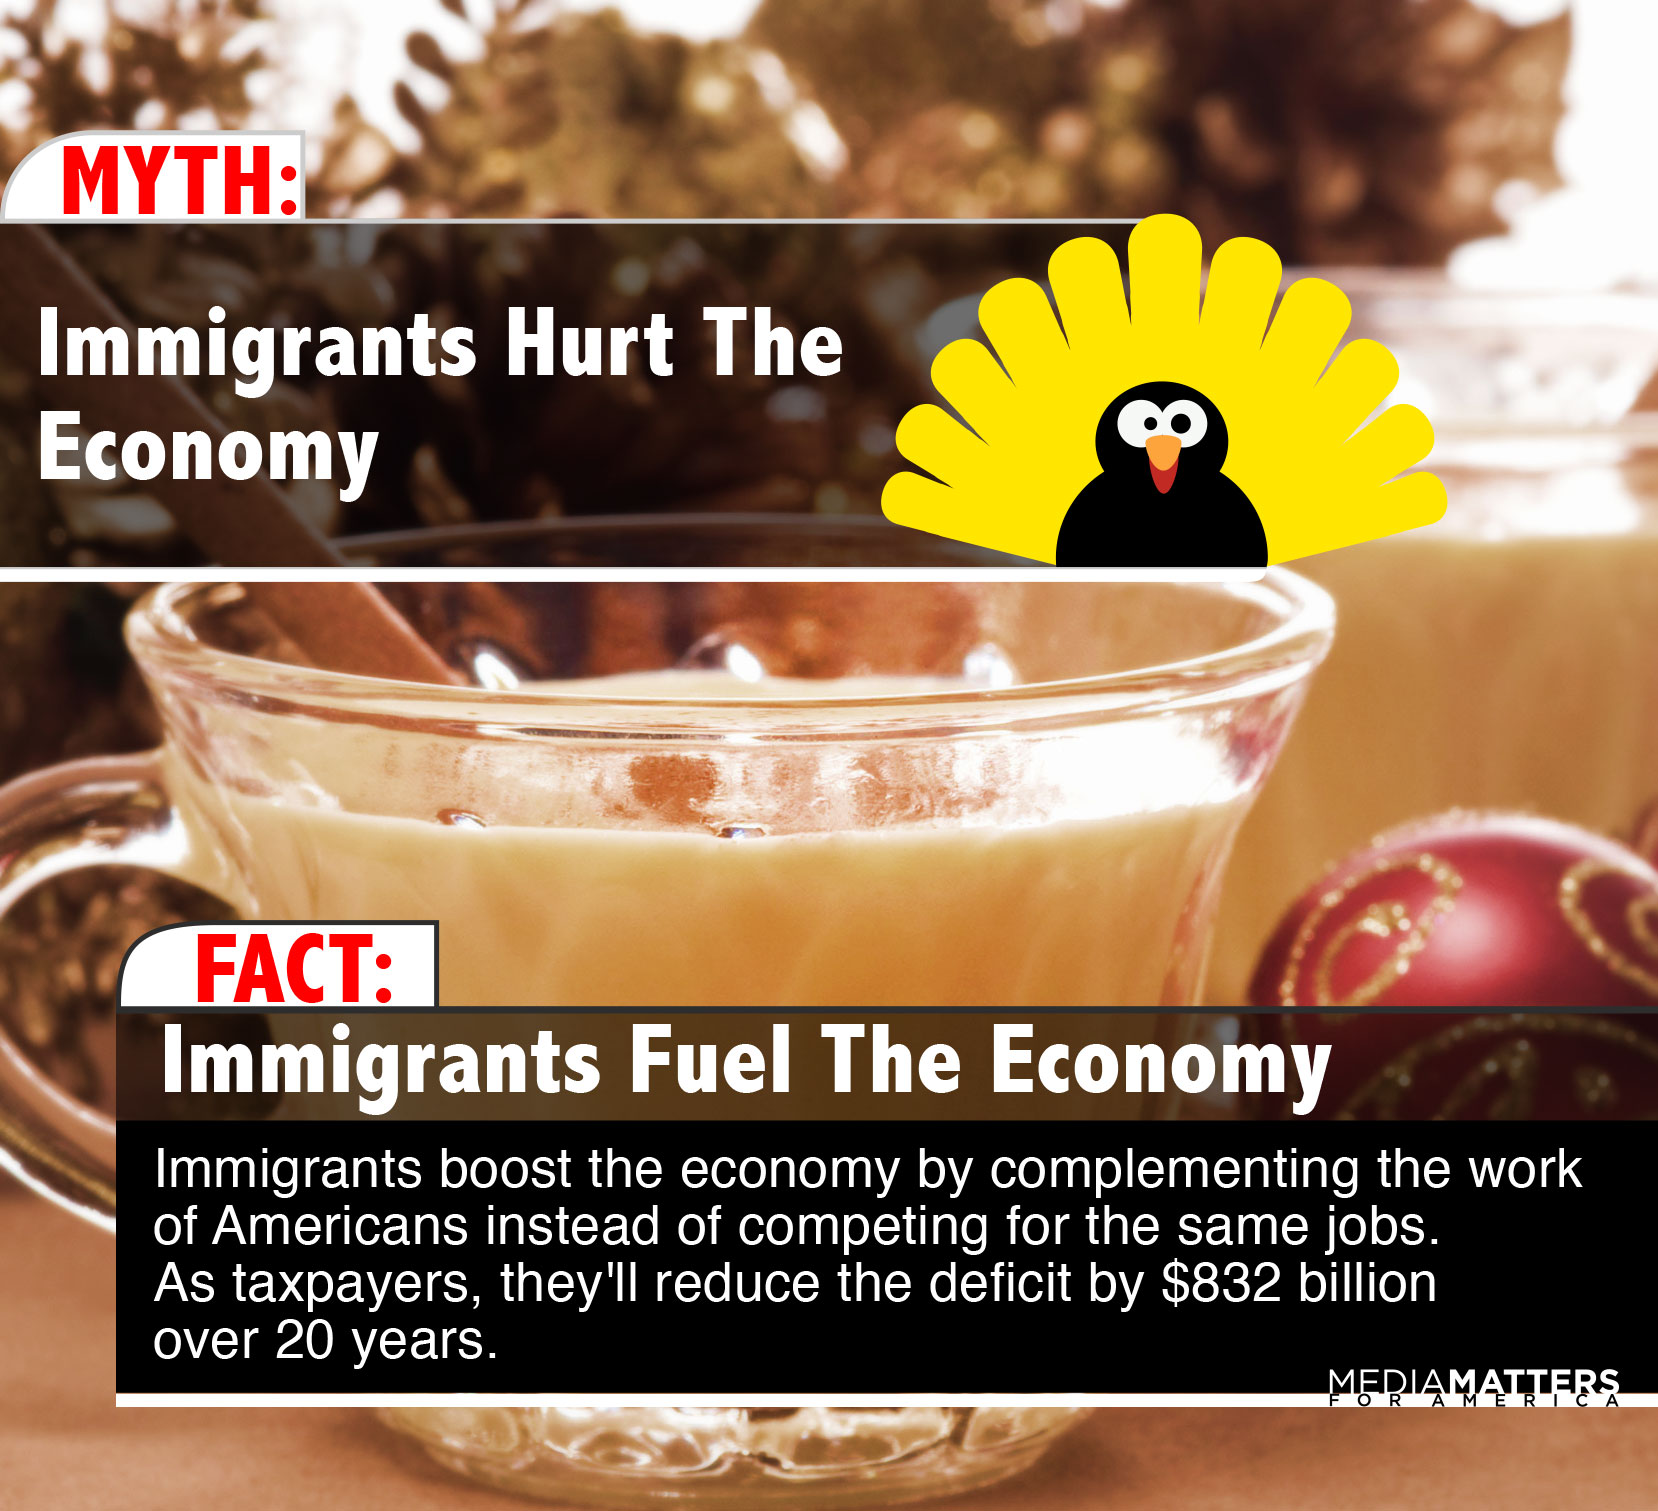 Immigrants and the Economy Myths and Facts